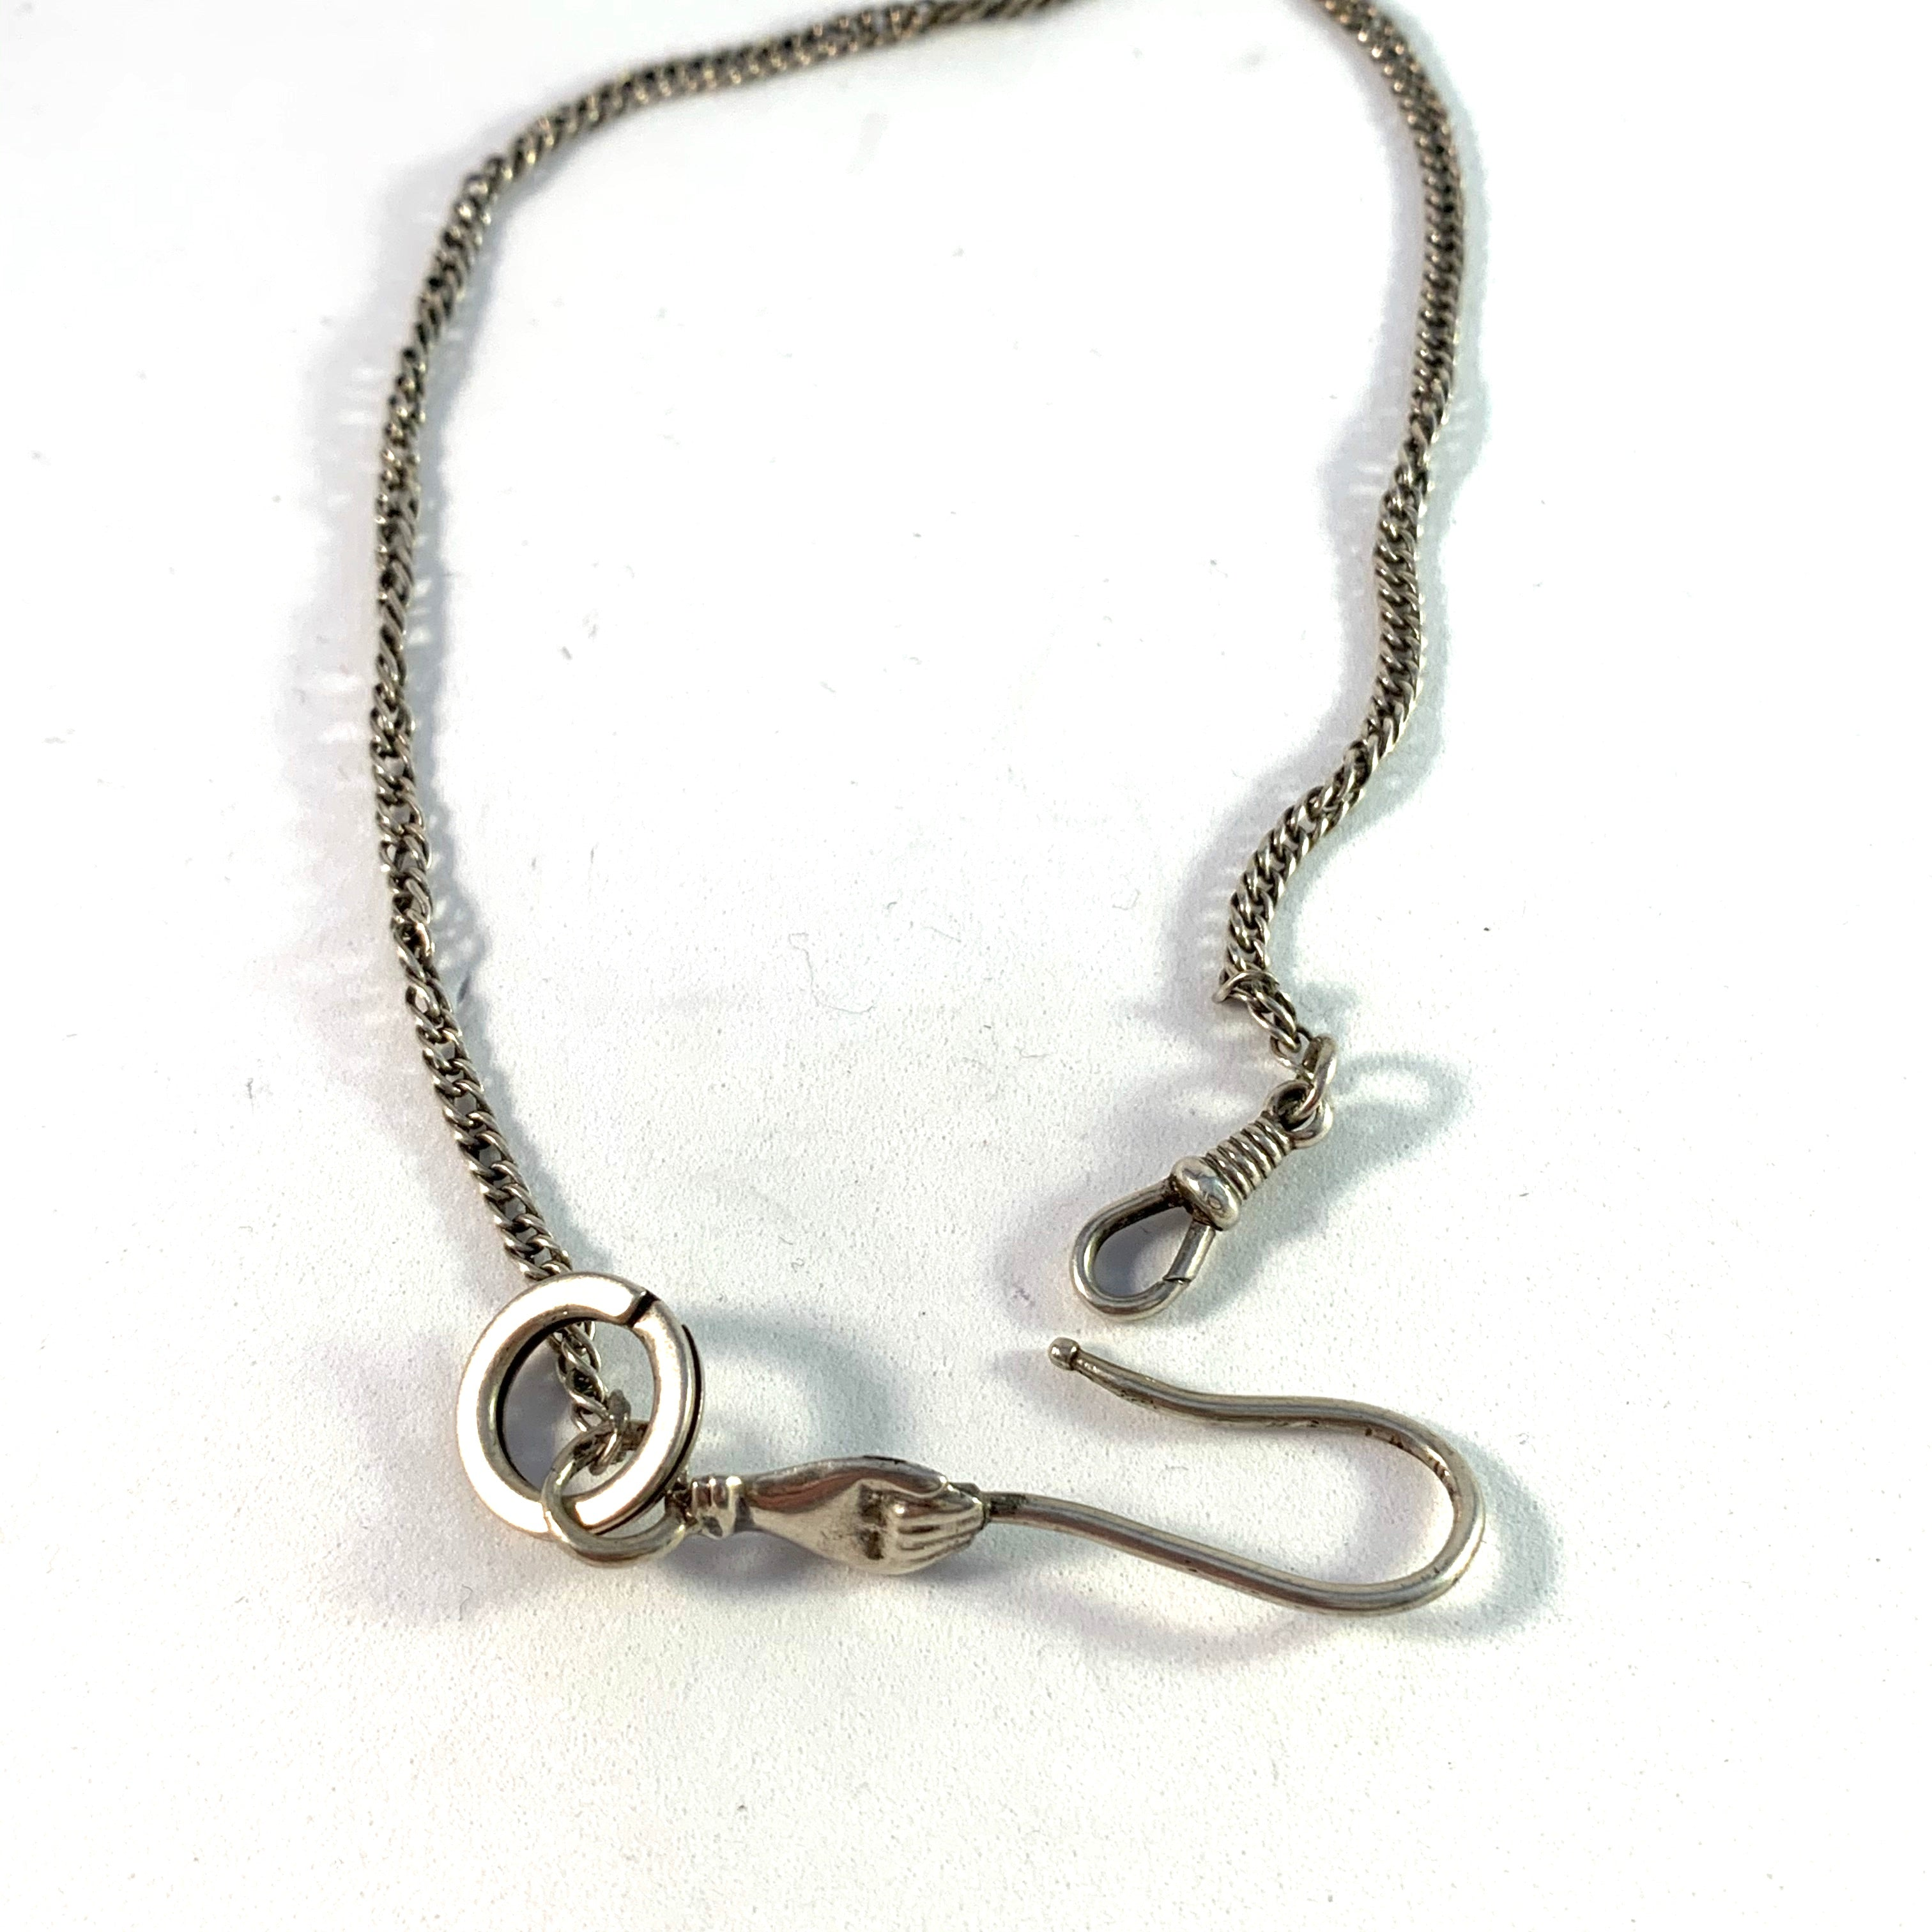 Victorian 830 Silver Watch Chatelaine Chain